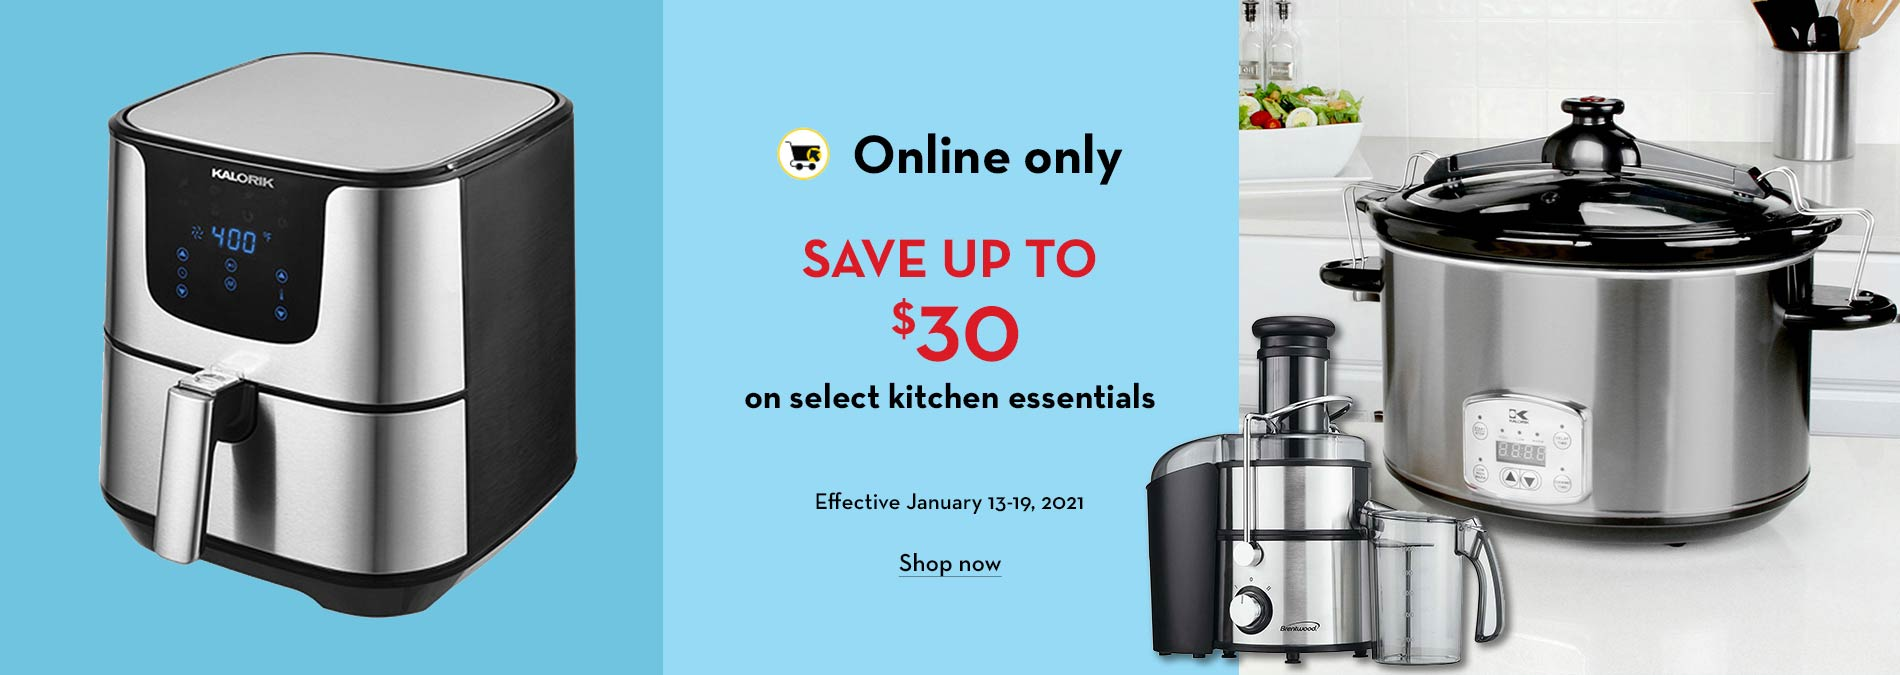 Online only. Save up to $30 on select kitchen essentials. Effective January 13-19, 2021.